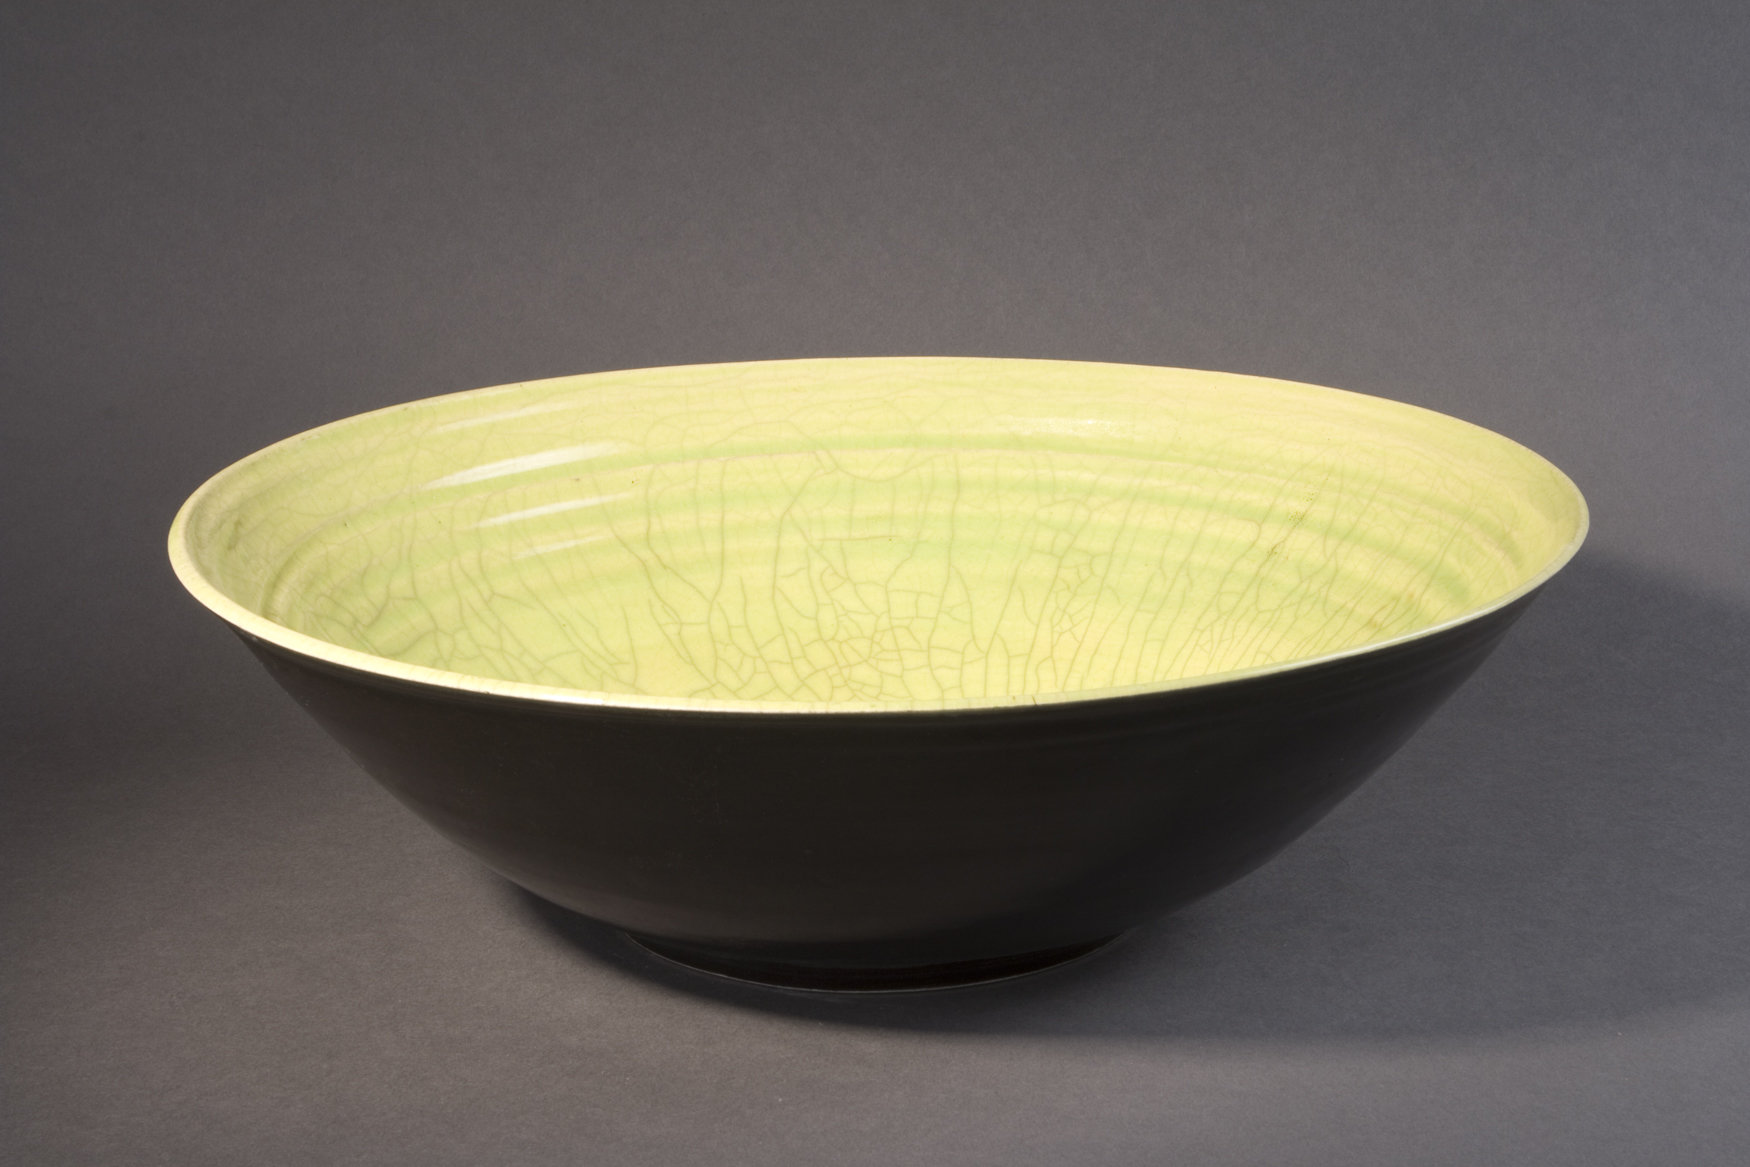 Black and Lime Raku Bowl by Amber Archer (Ceramic Bowl) | Artful Home